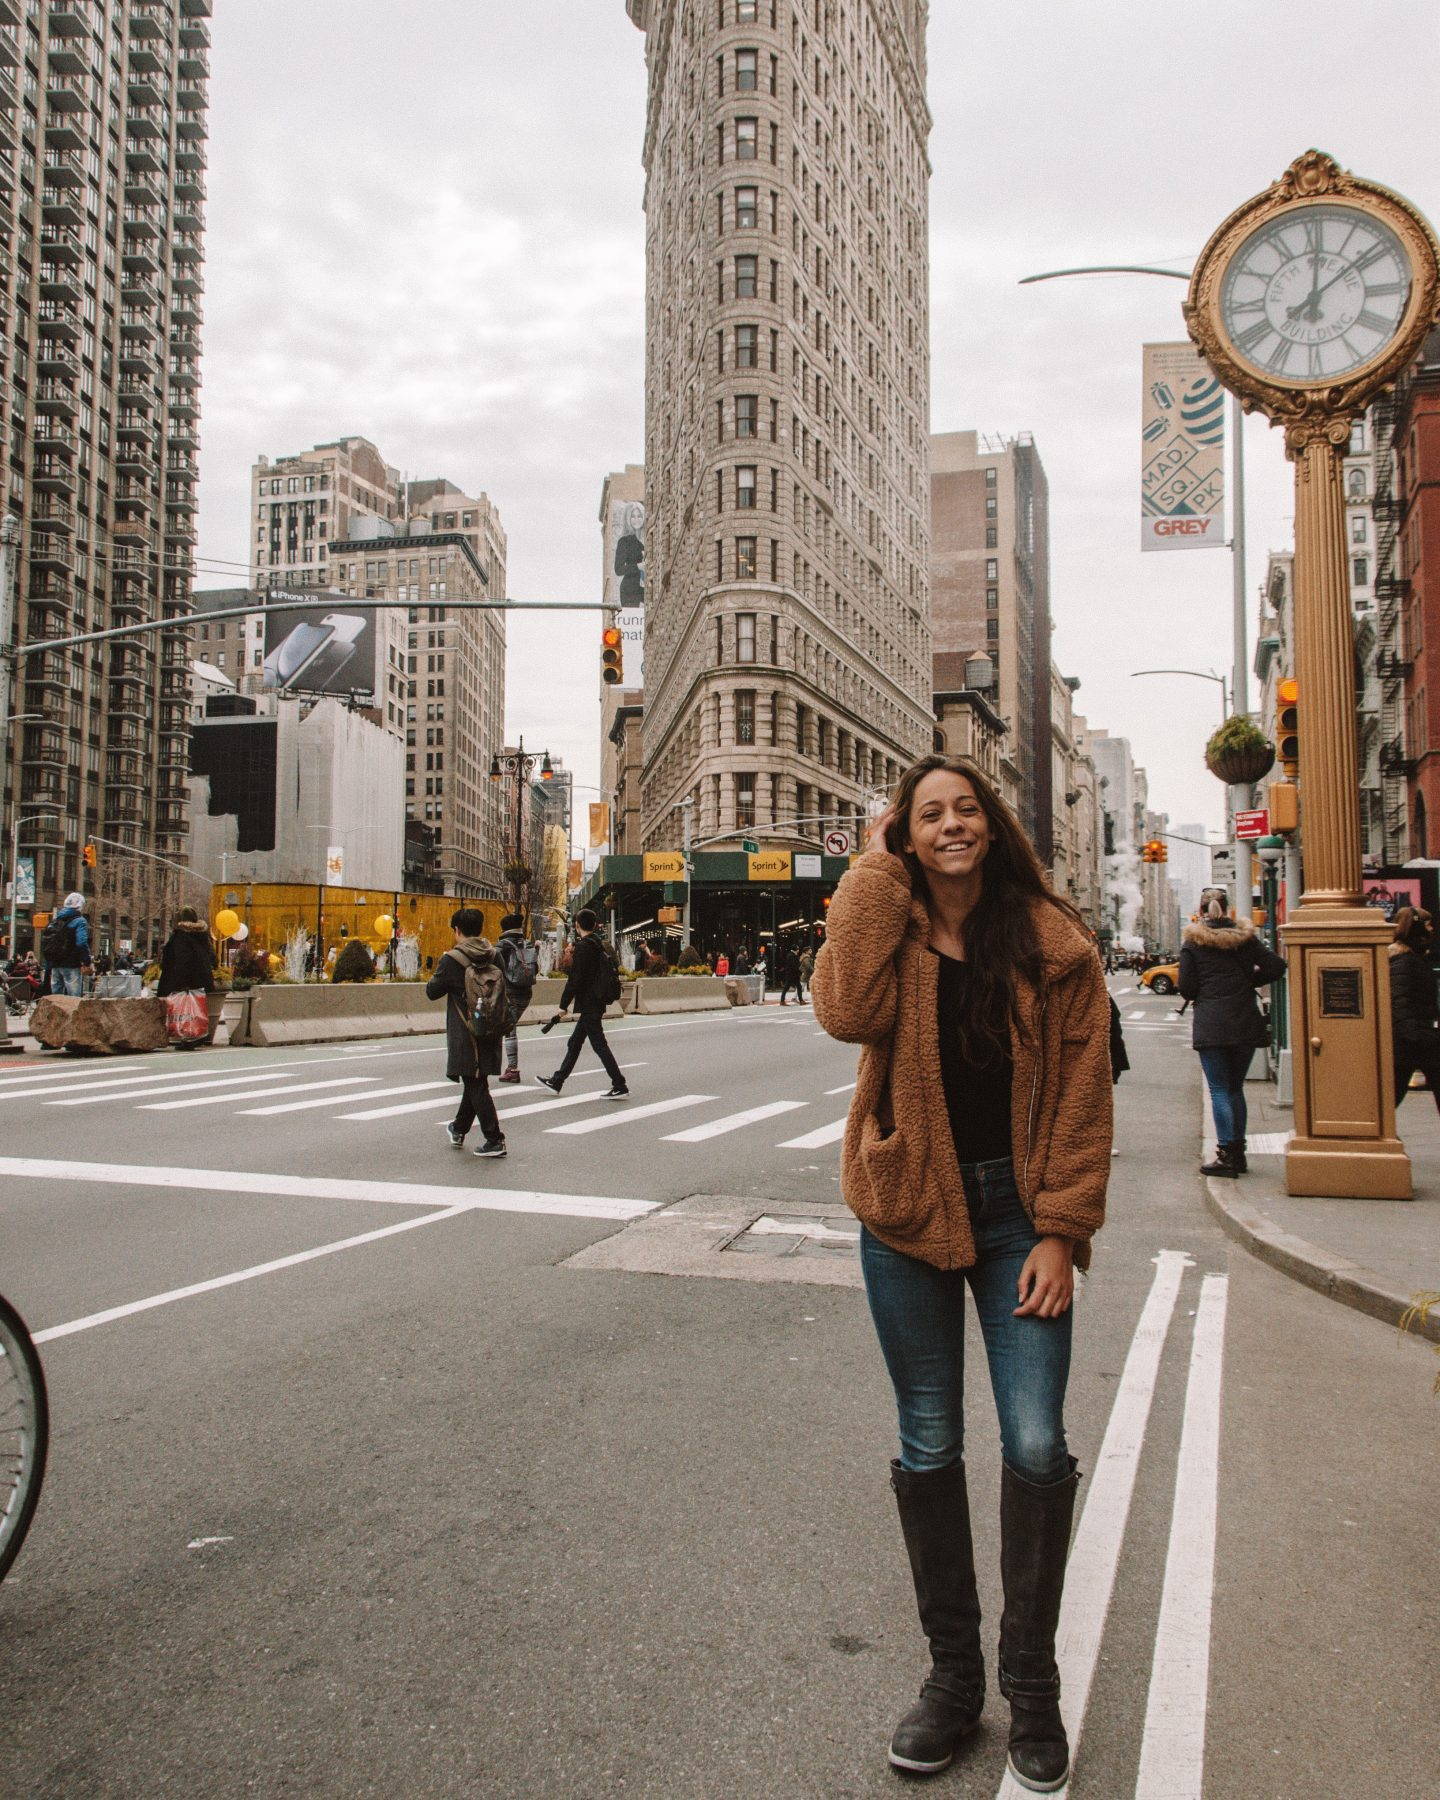 Girl posing in front of Flatiron Building in NYC